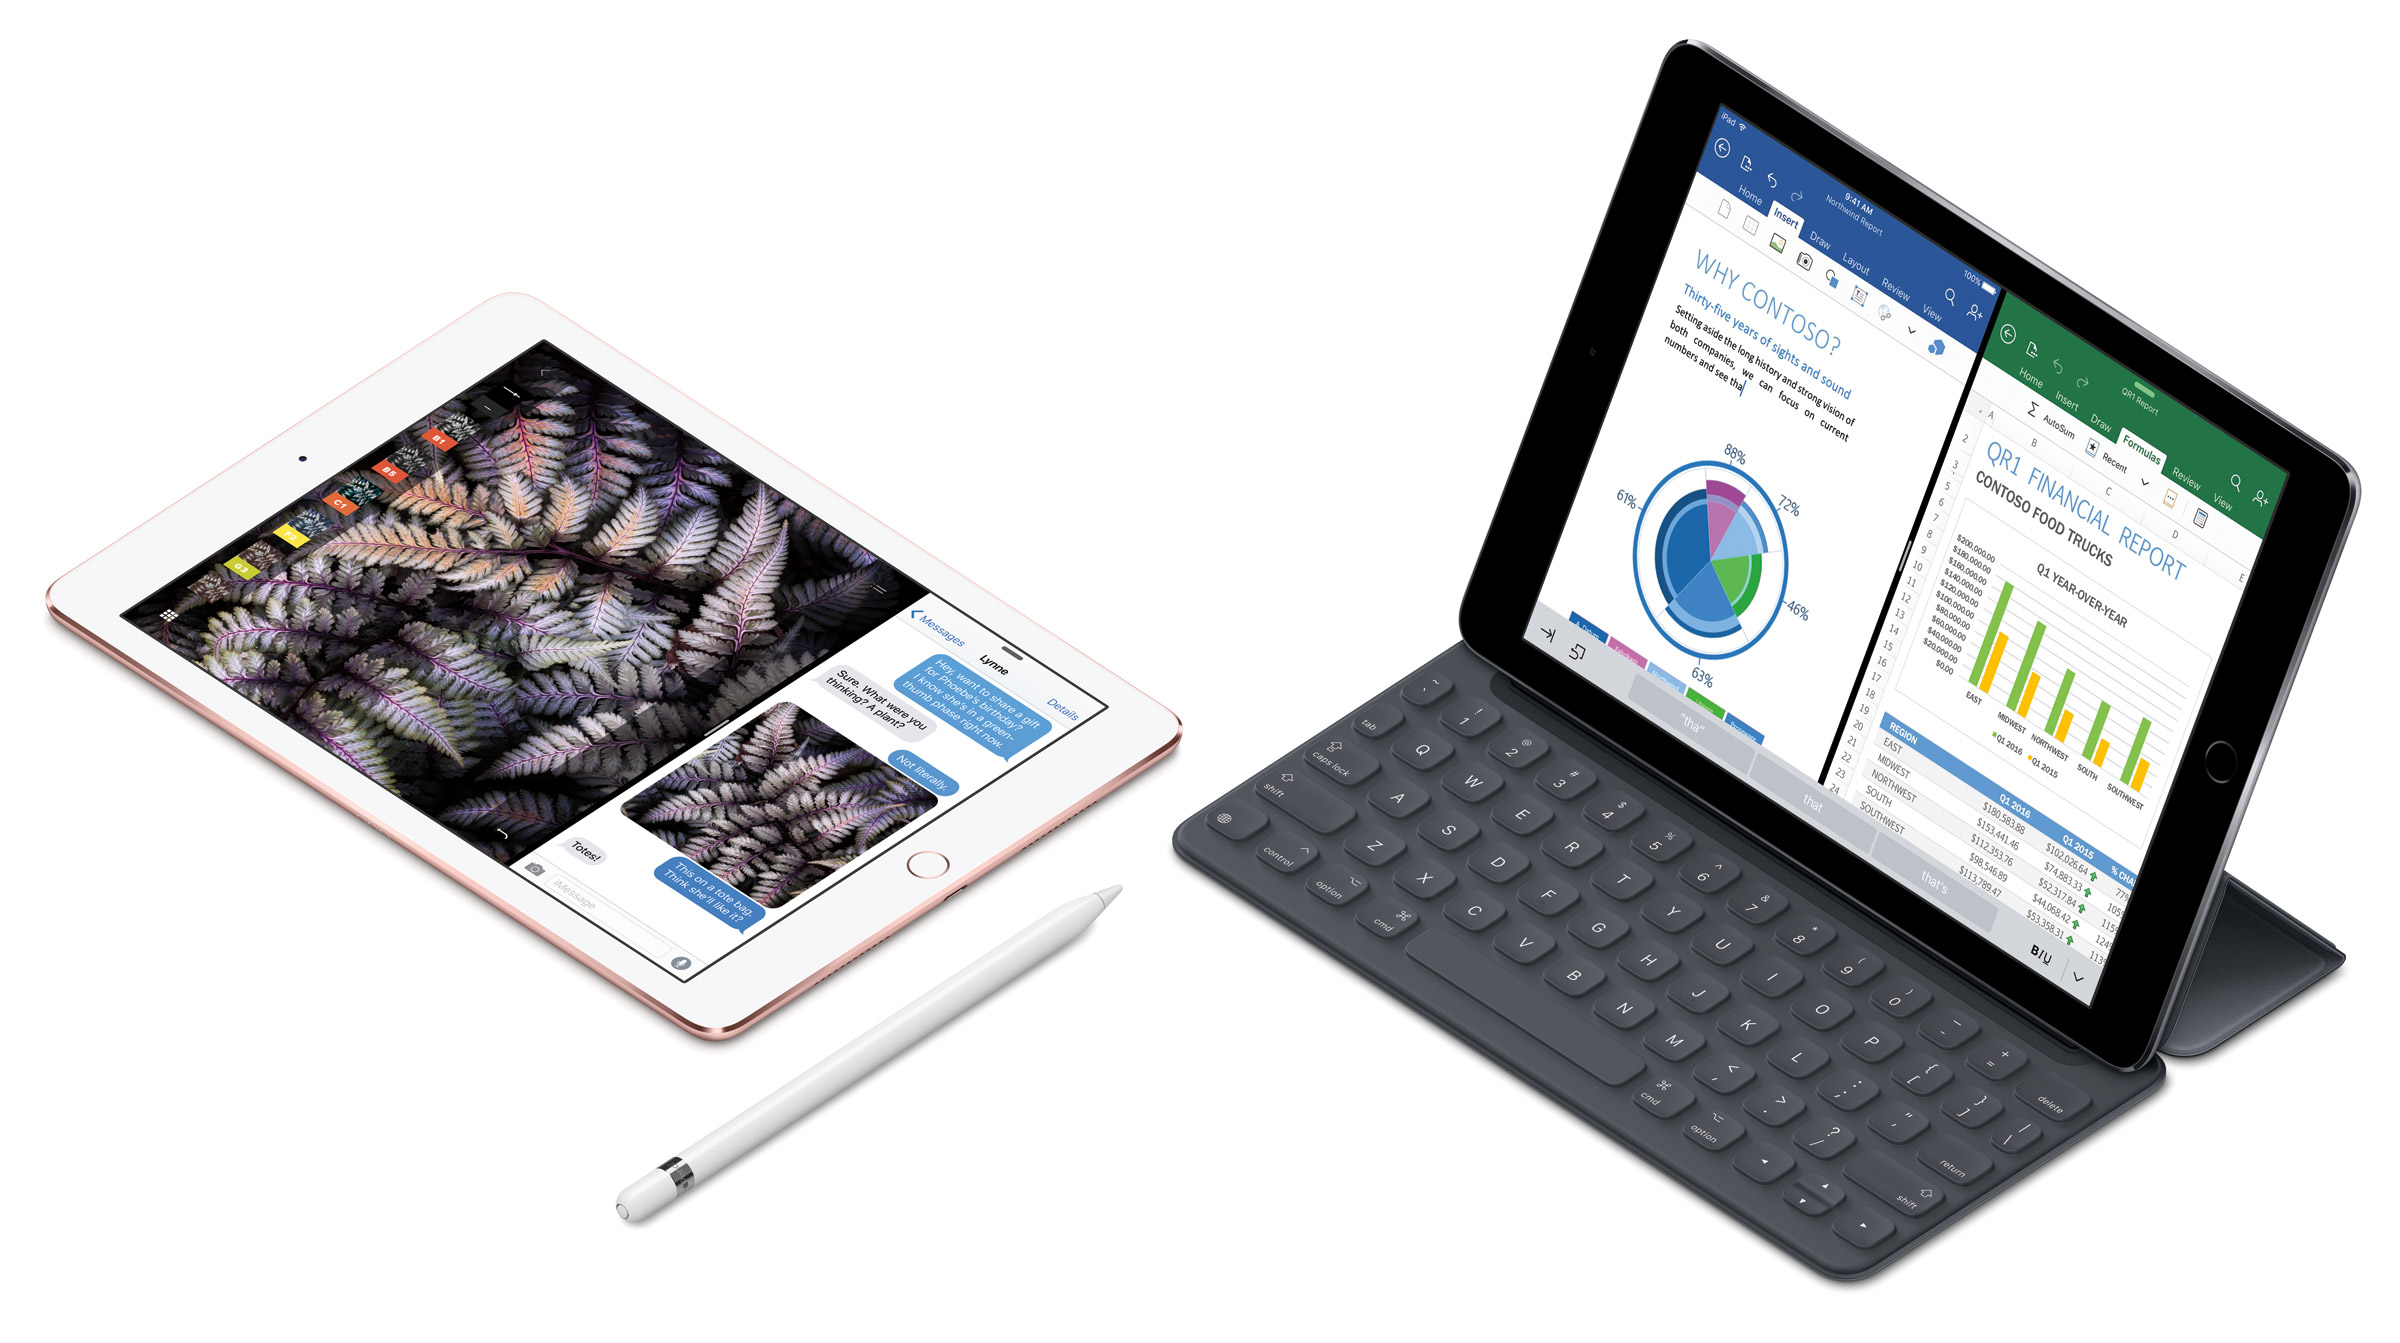 iPad Pro 9.7-inch, Smart Keyboard, Apple Pencil